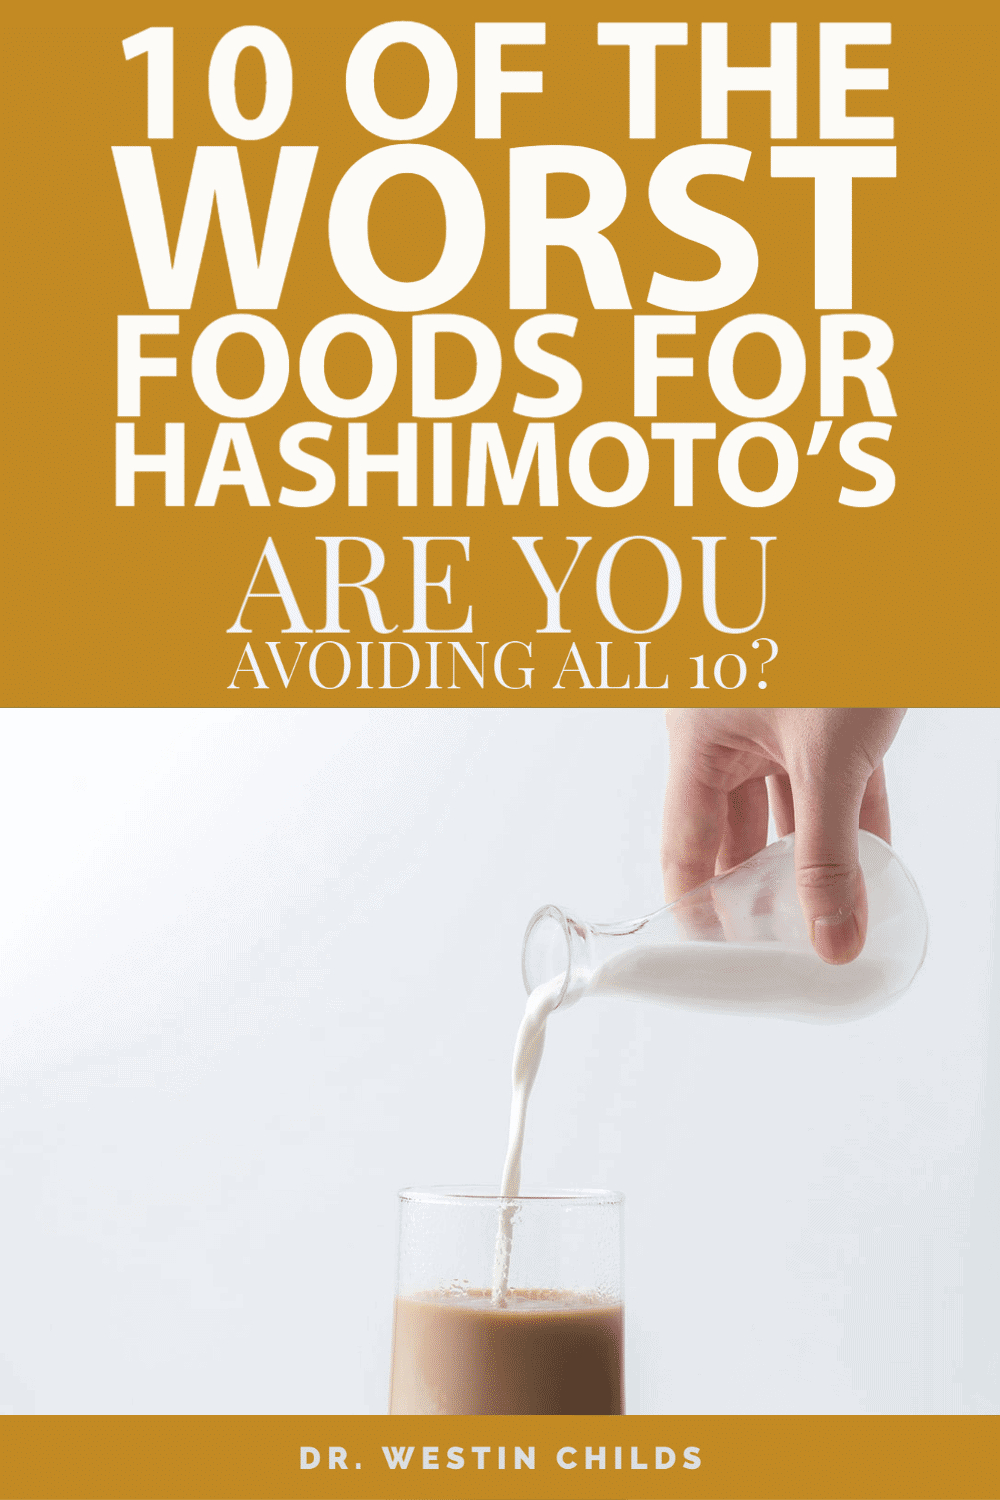 10 of the worst foods for hashimoto's - are you avoiding all 10?